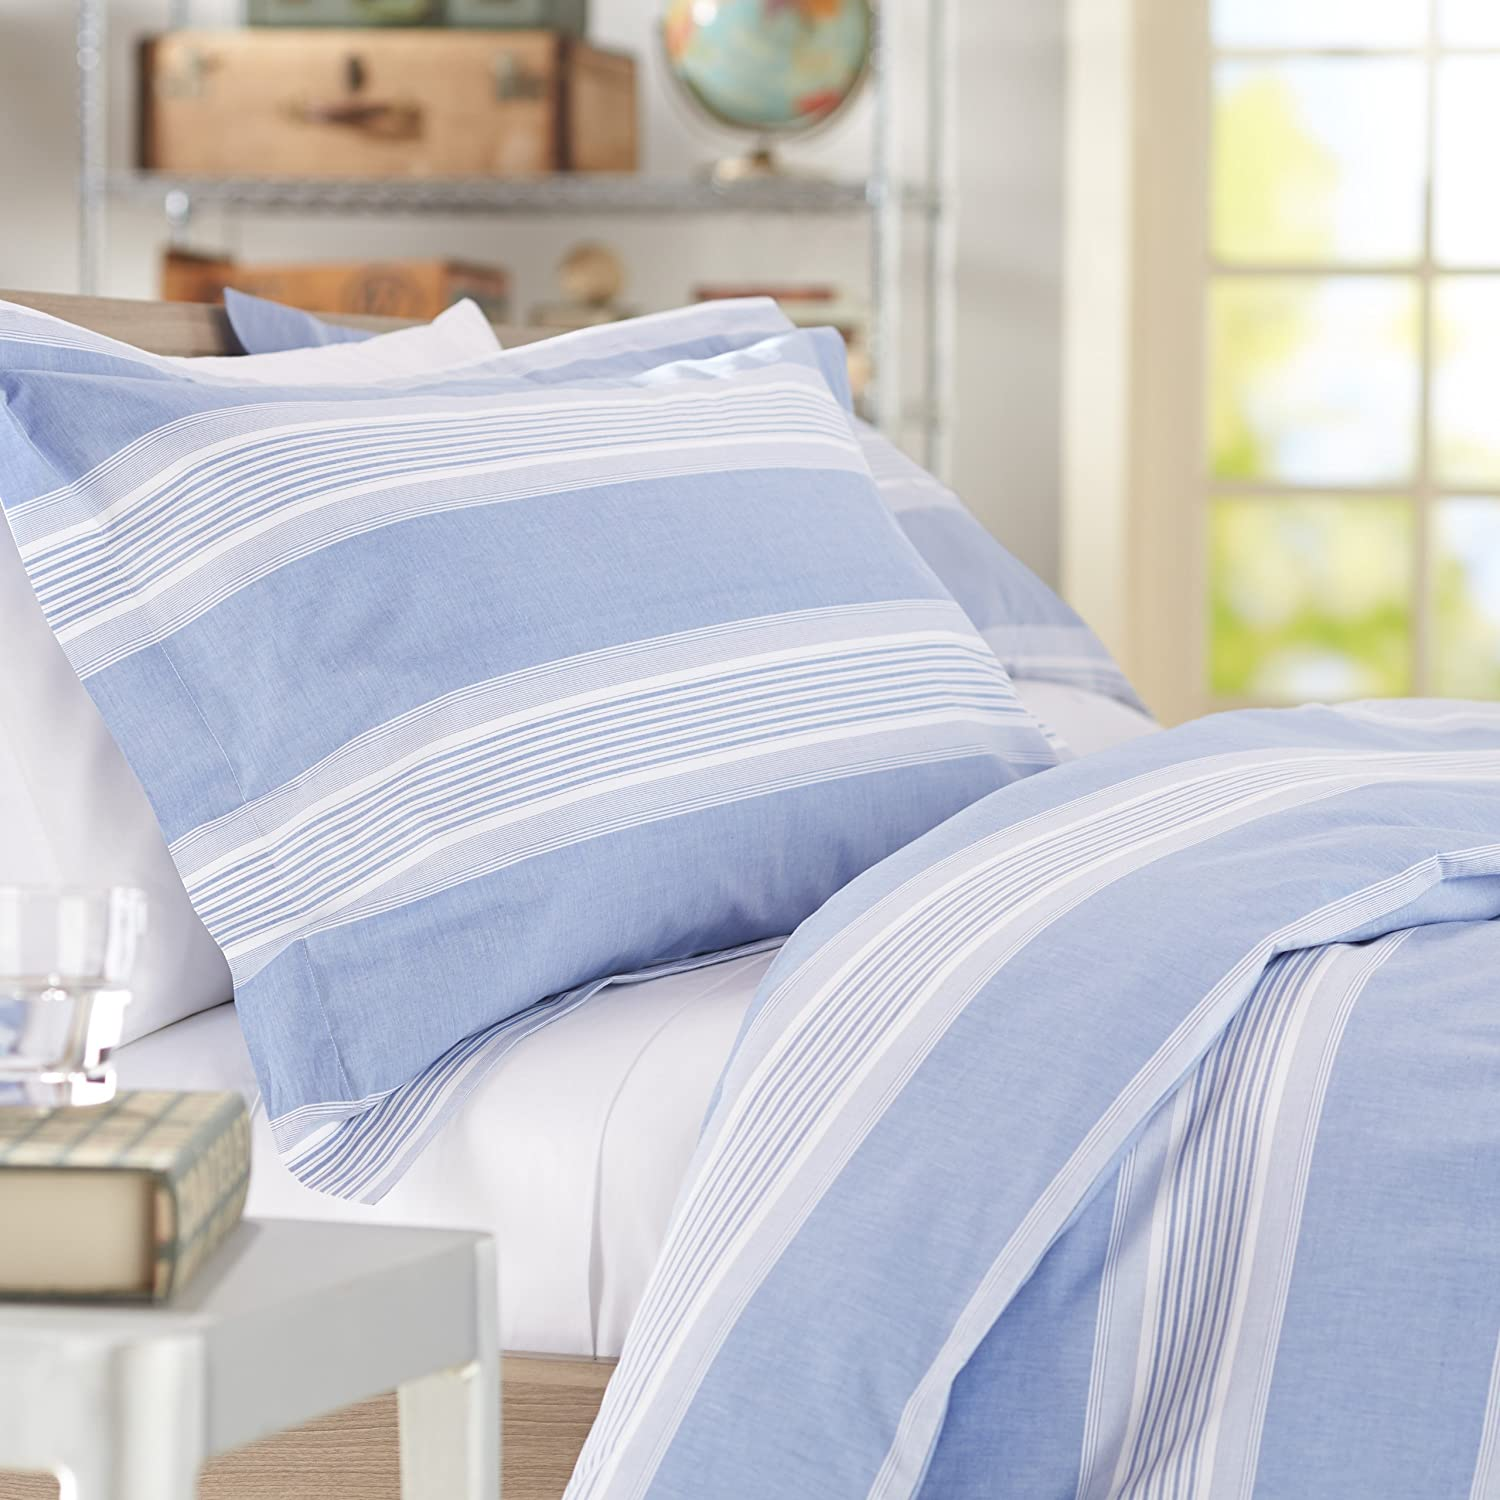 bedding duvet nordstrom chambray covers home cover c